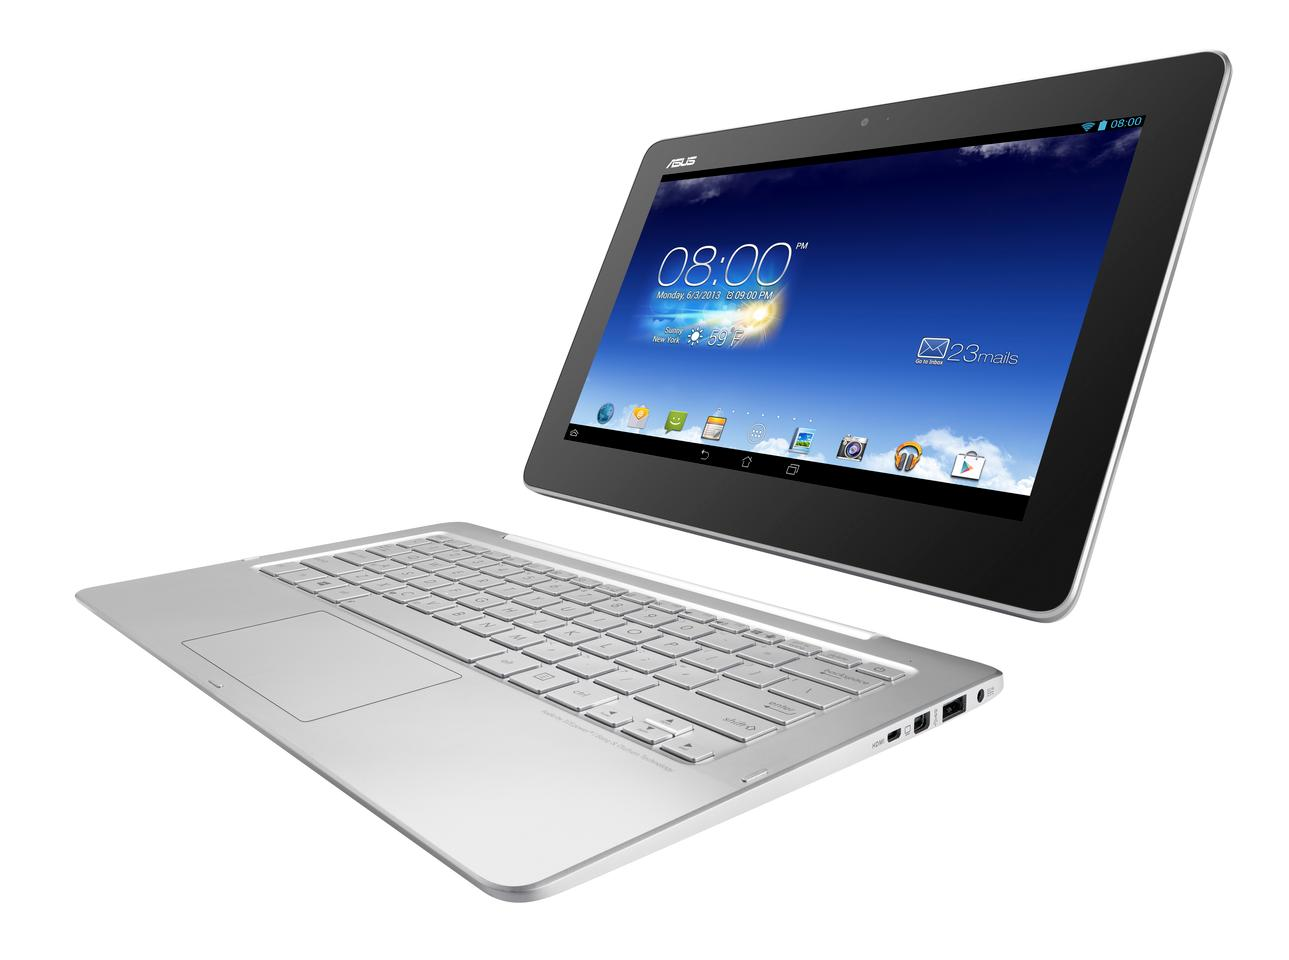 The Trio features an 11.6-inch, 1920 x 1080 resolution IPS display that can be docked to the keyboard base for Windows 8 notebook mode, or separated for Android (Jelly Bean) tablet mode